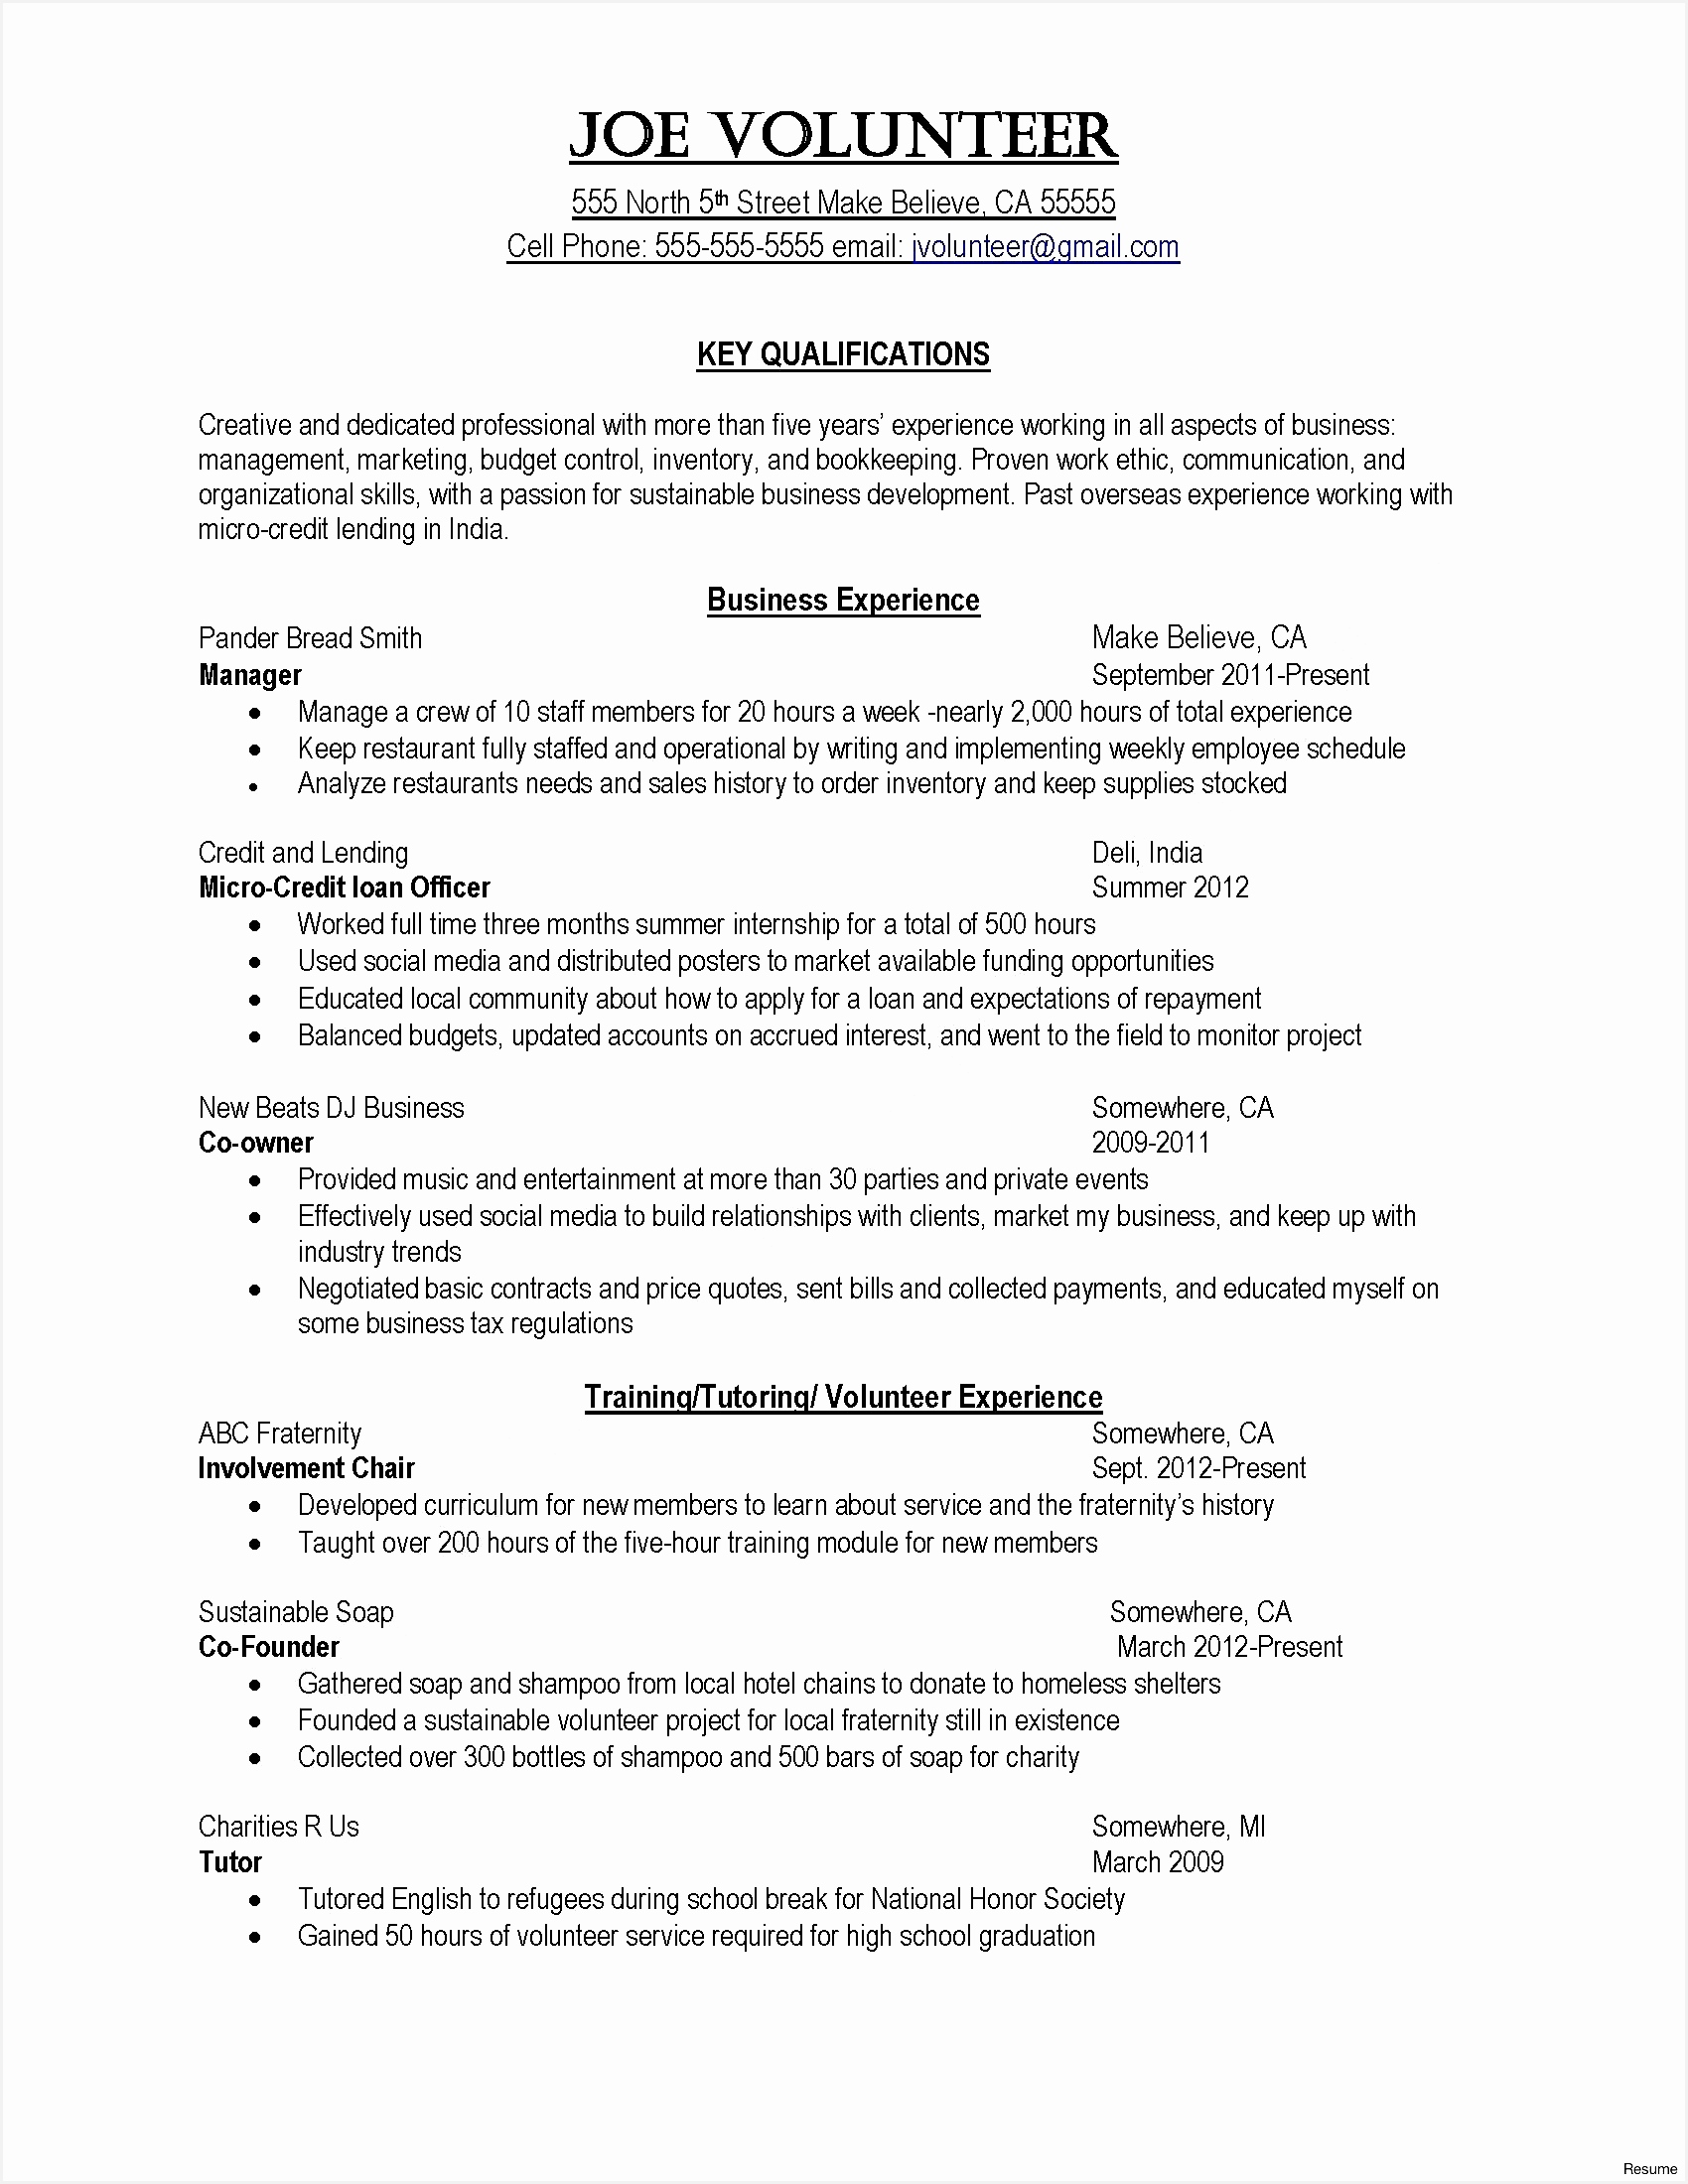 Artist Resume Template Awesome Resume Puter Skills Examples Fresh Od Specialist Sample Resume22001700